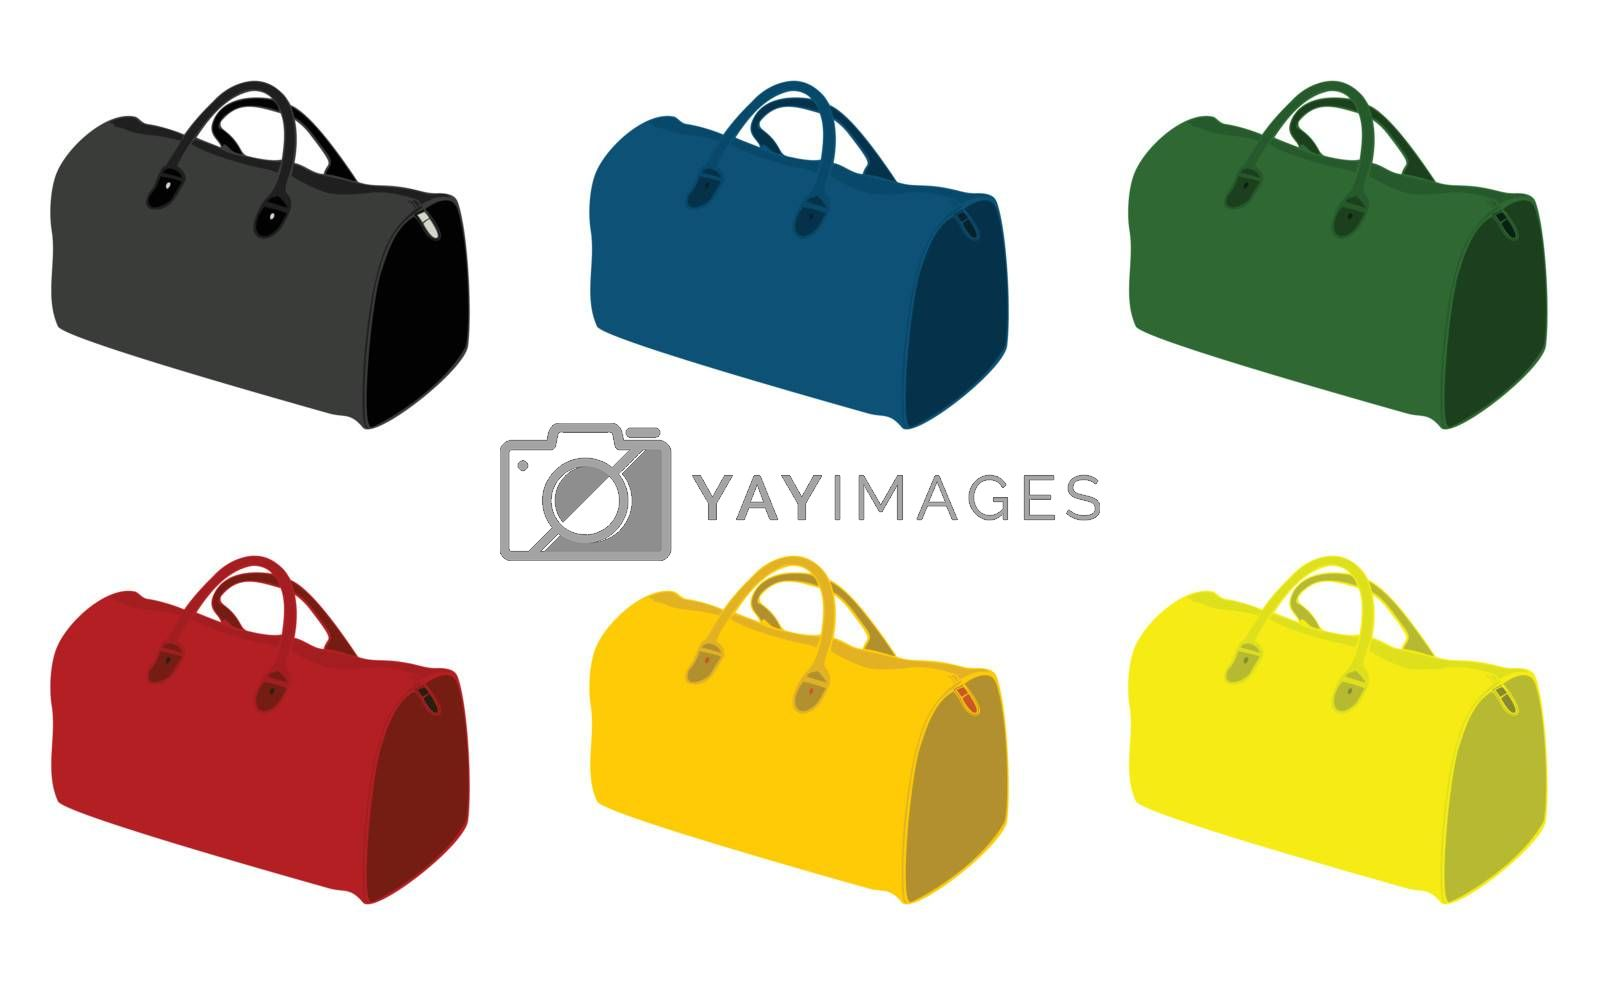 Sports bags of different colour. A vector illustration